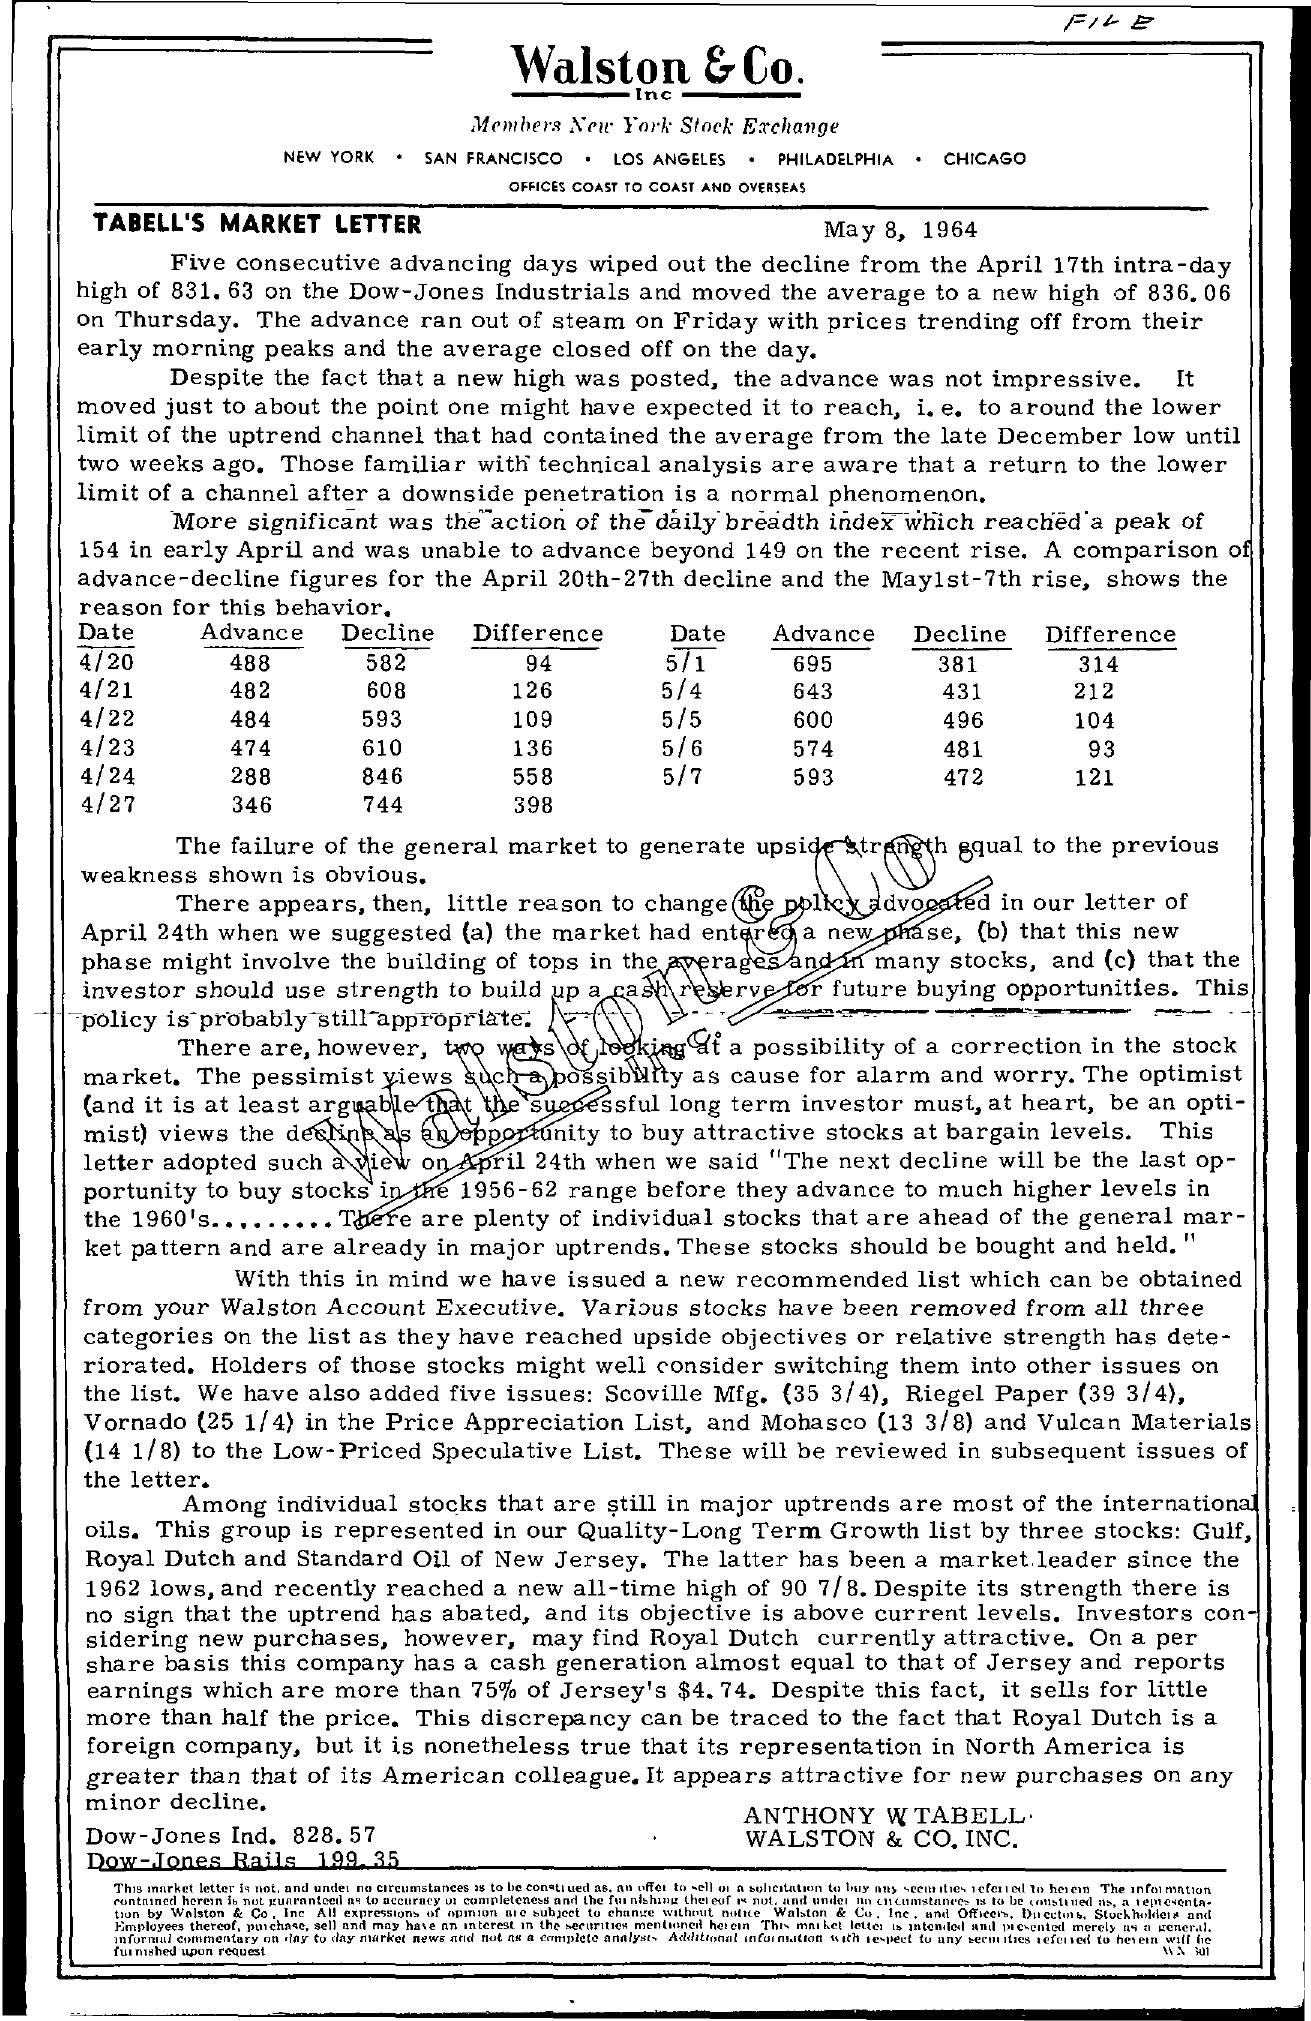 Tabell's Market Letter - May 08, 1964